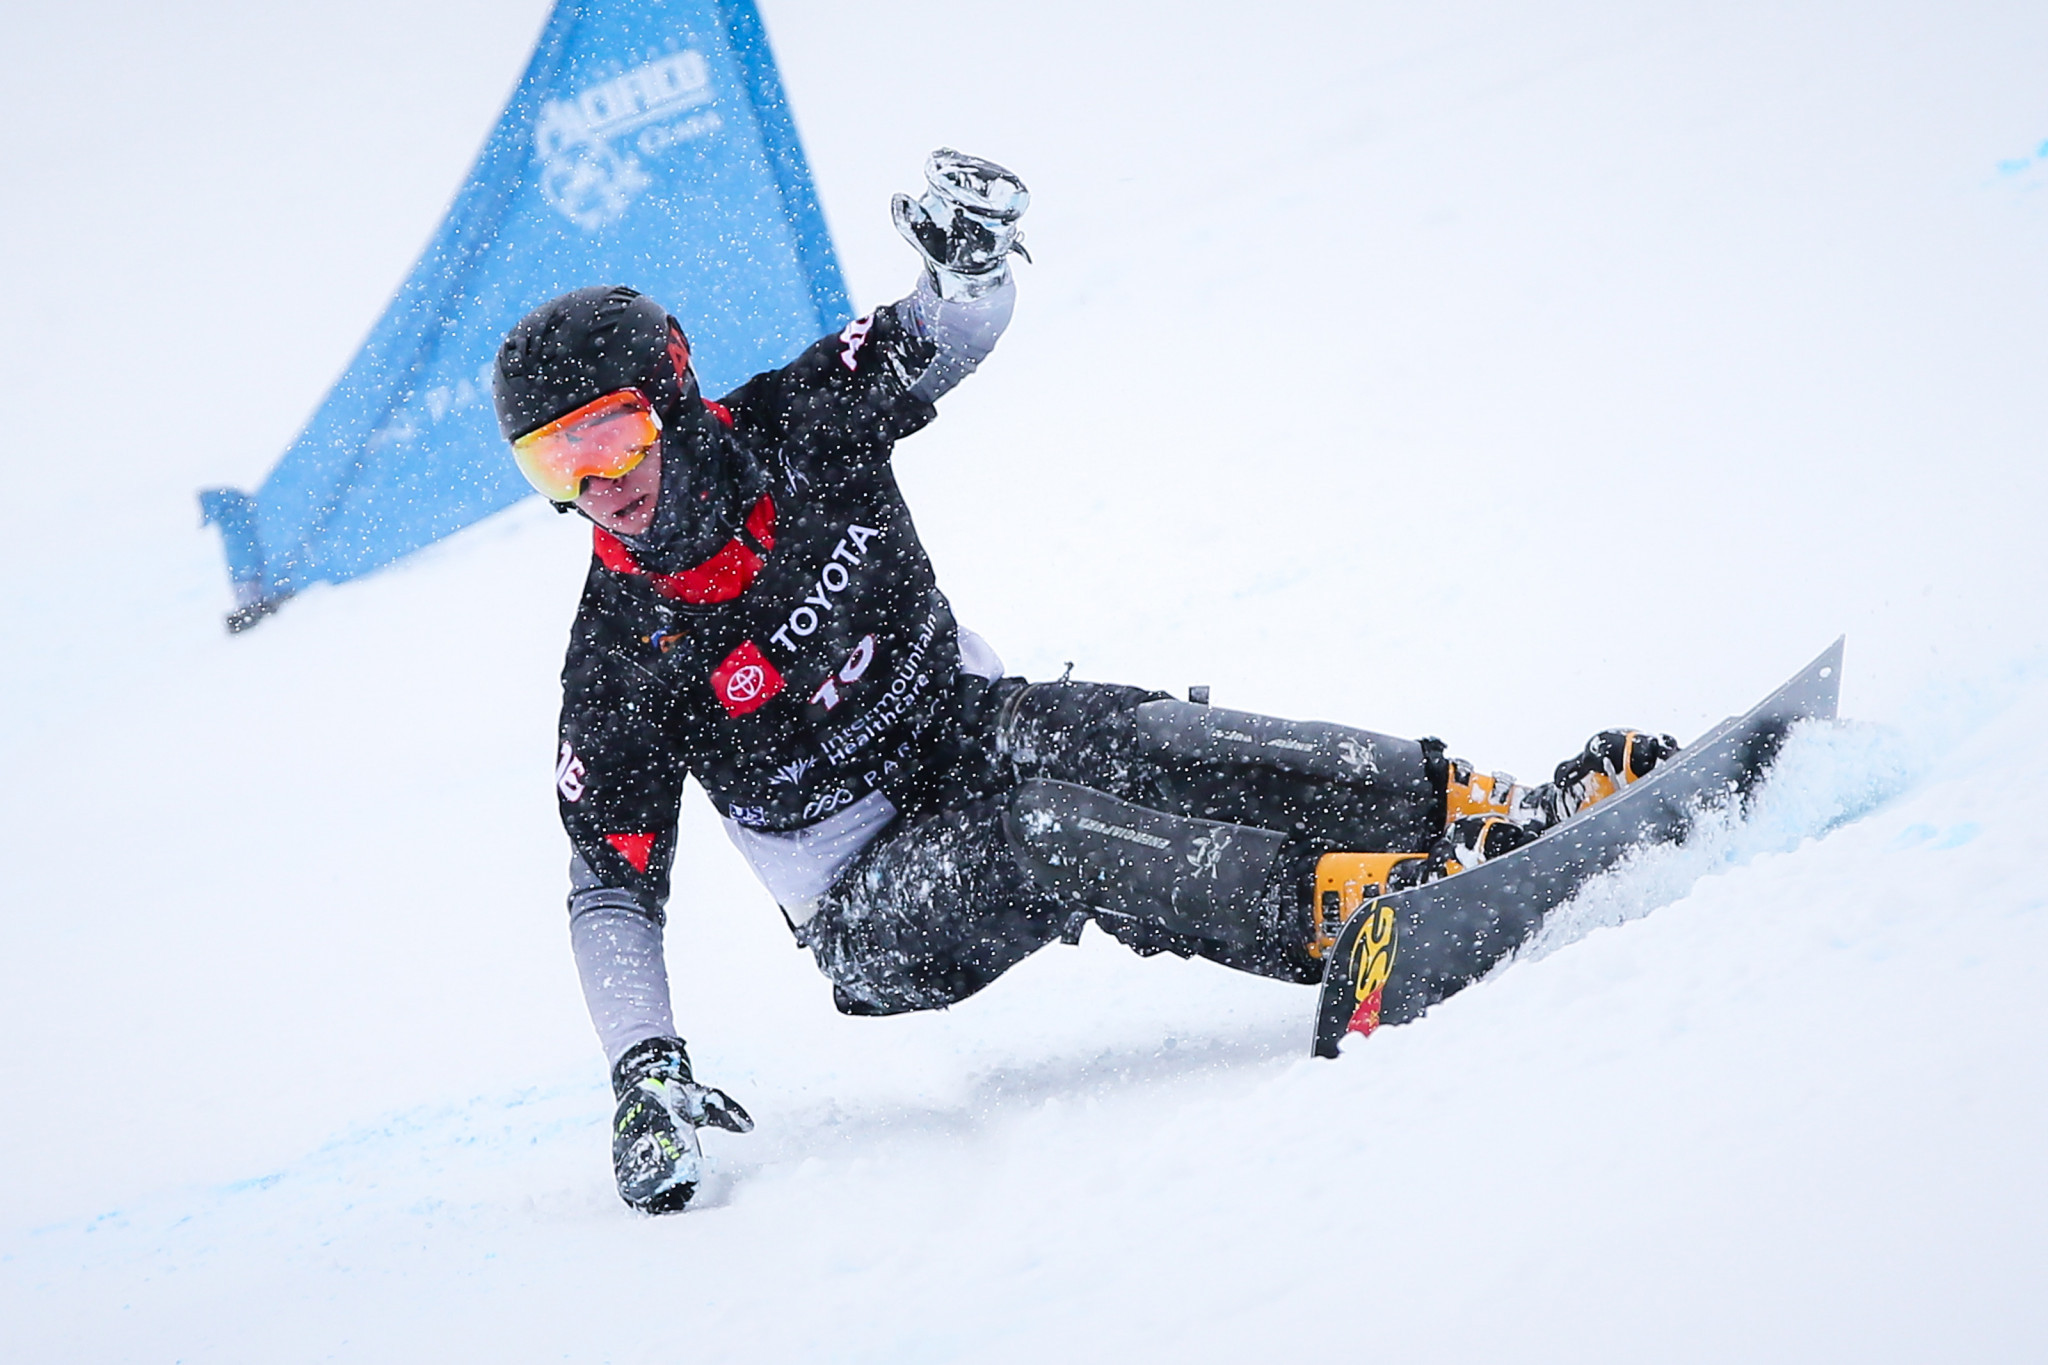 Loginov to defend slalom titles at FIS Snowboard World Championships in Rogla